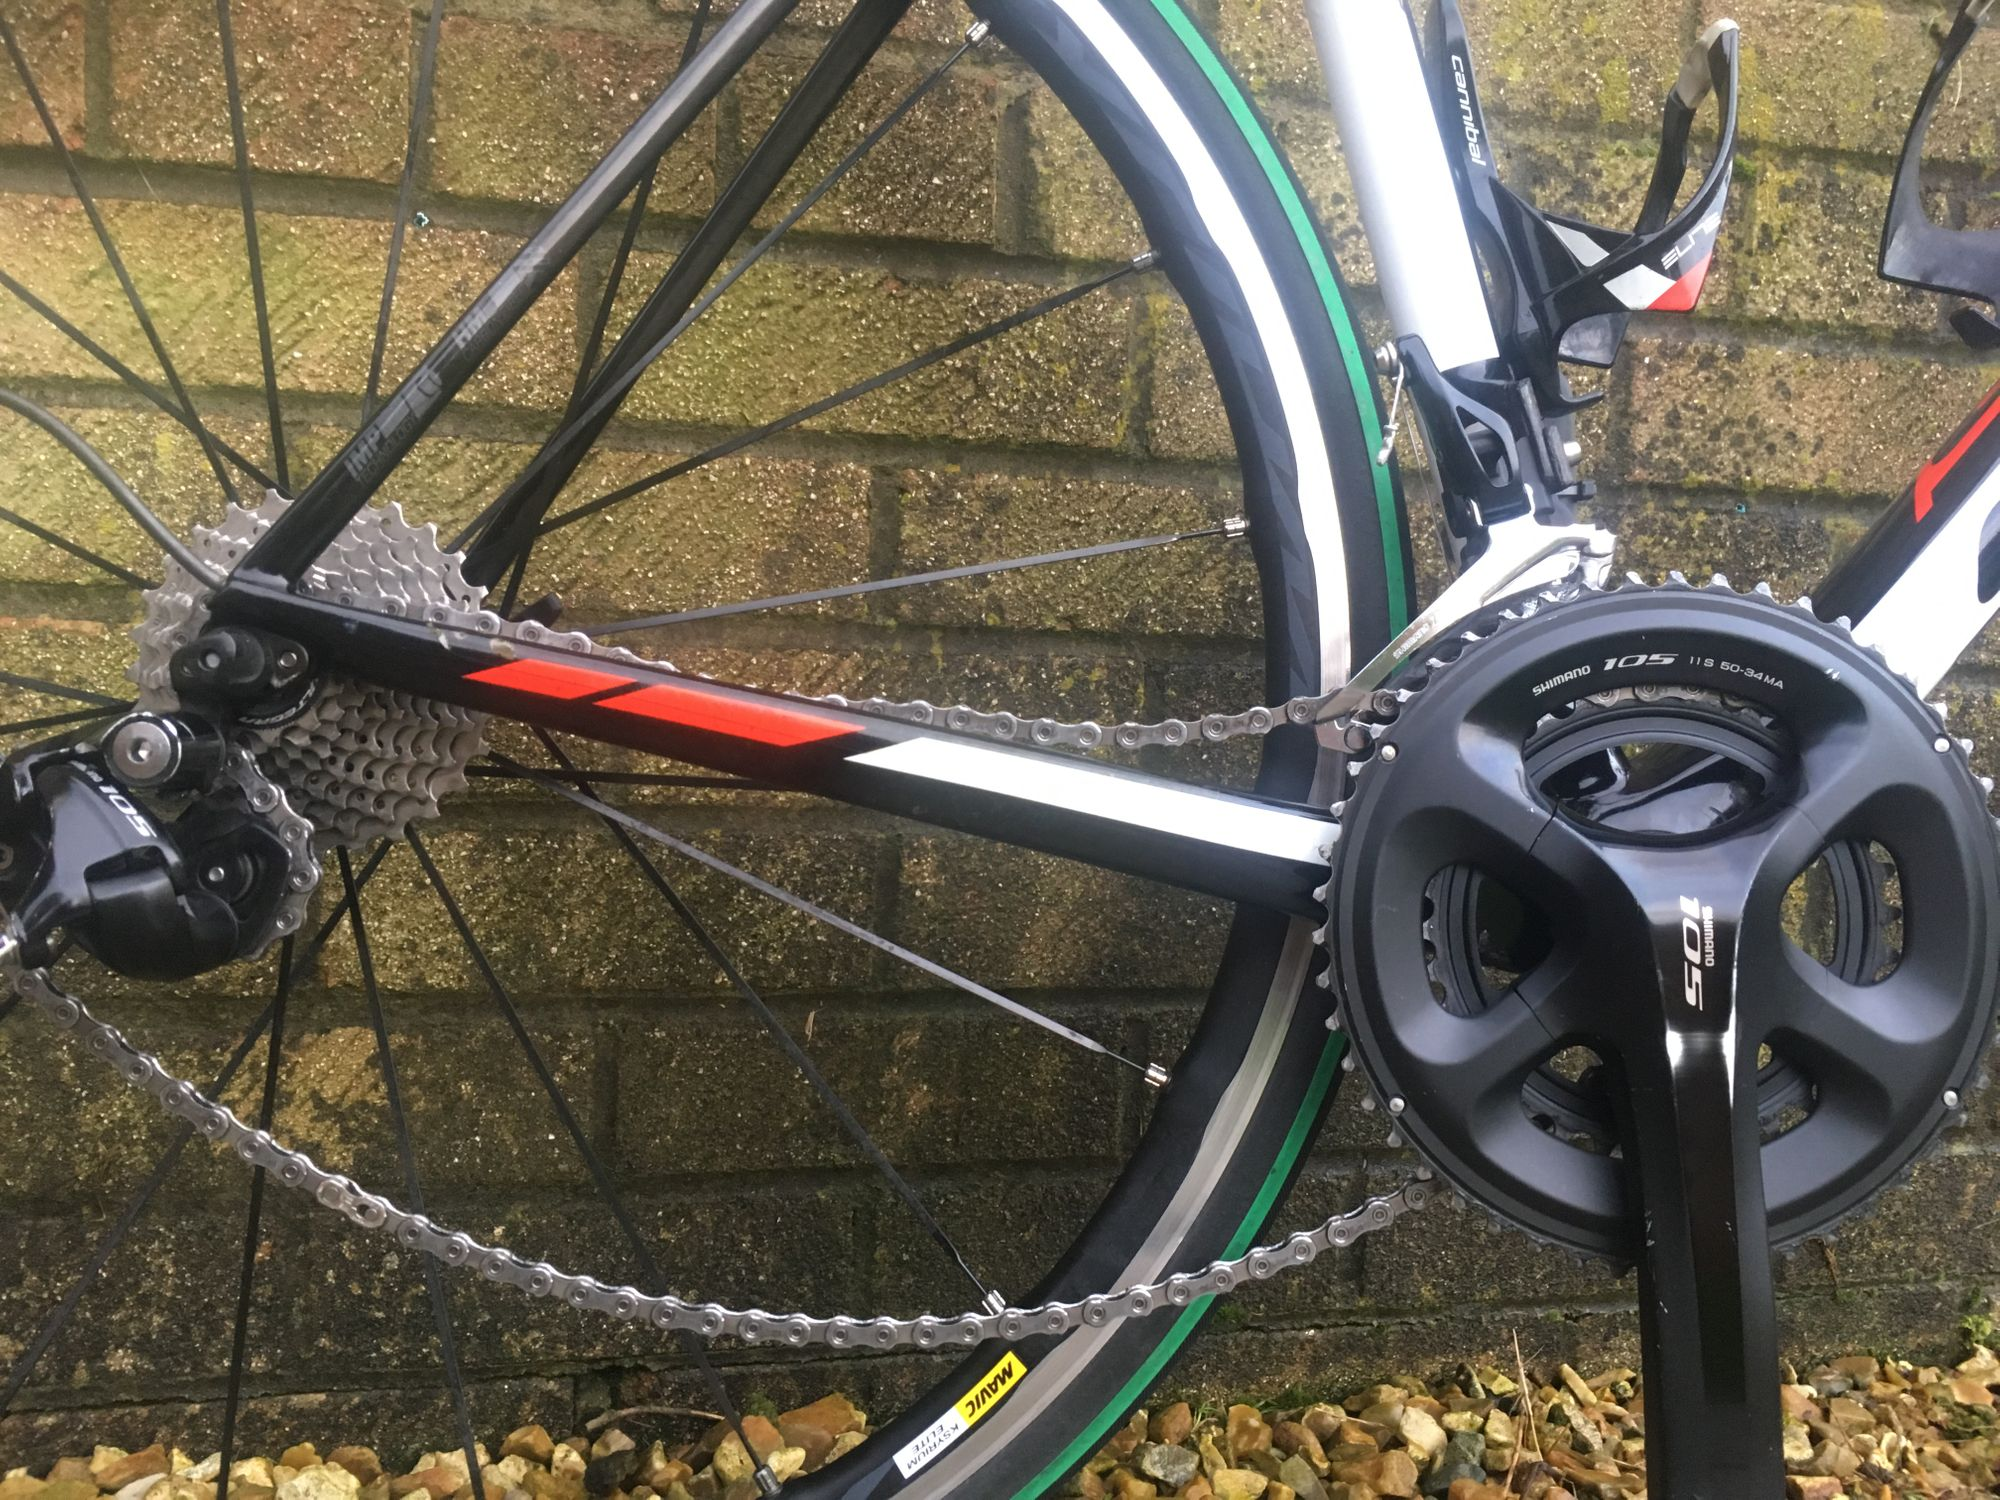 Protect Your Frame: 6 ways to prevent your chain from damaging your bike